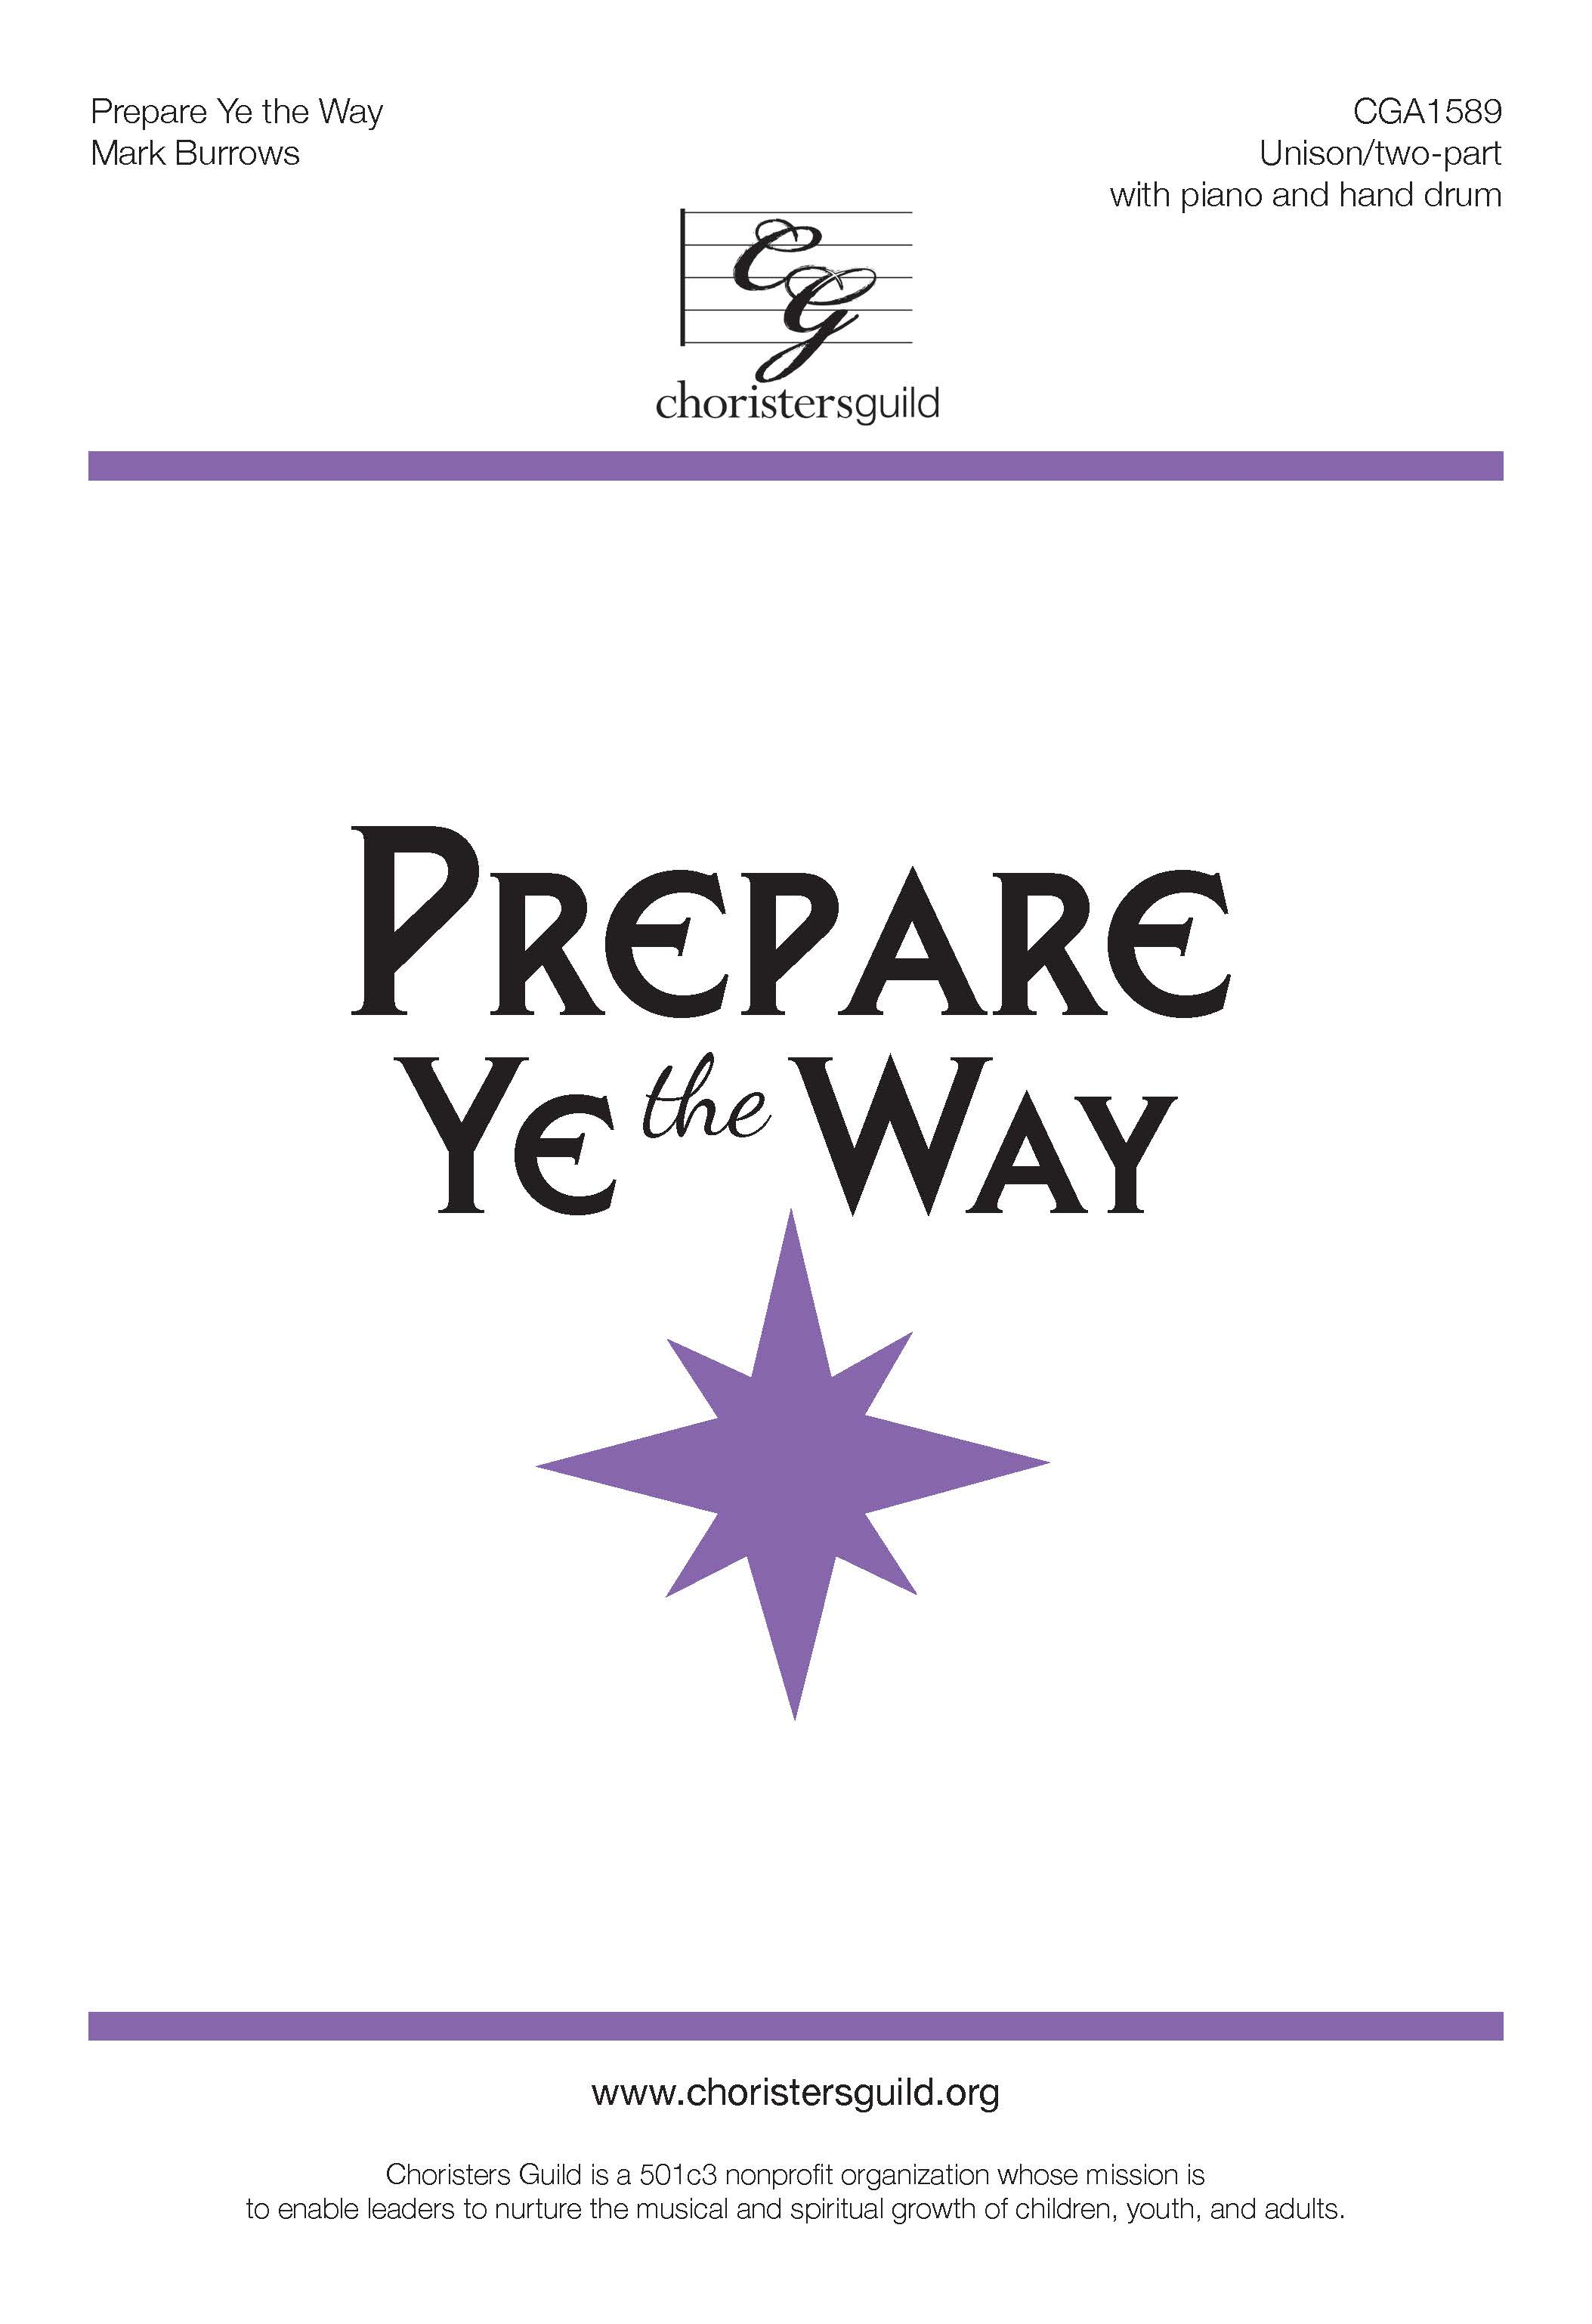 Prepare Ye the Way - Unison/Two-part